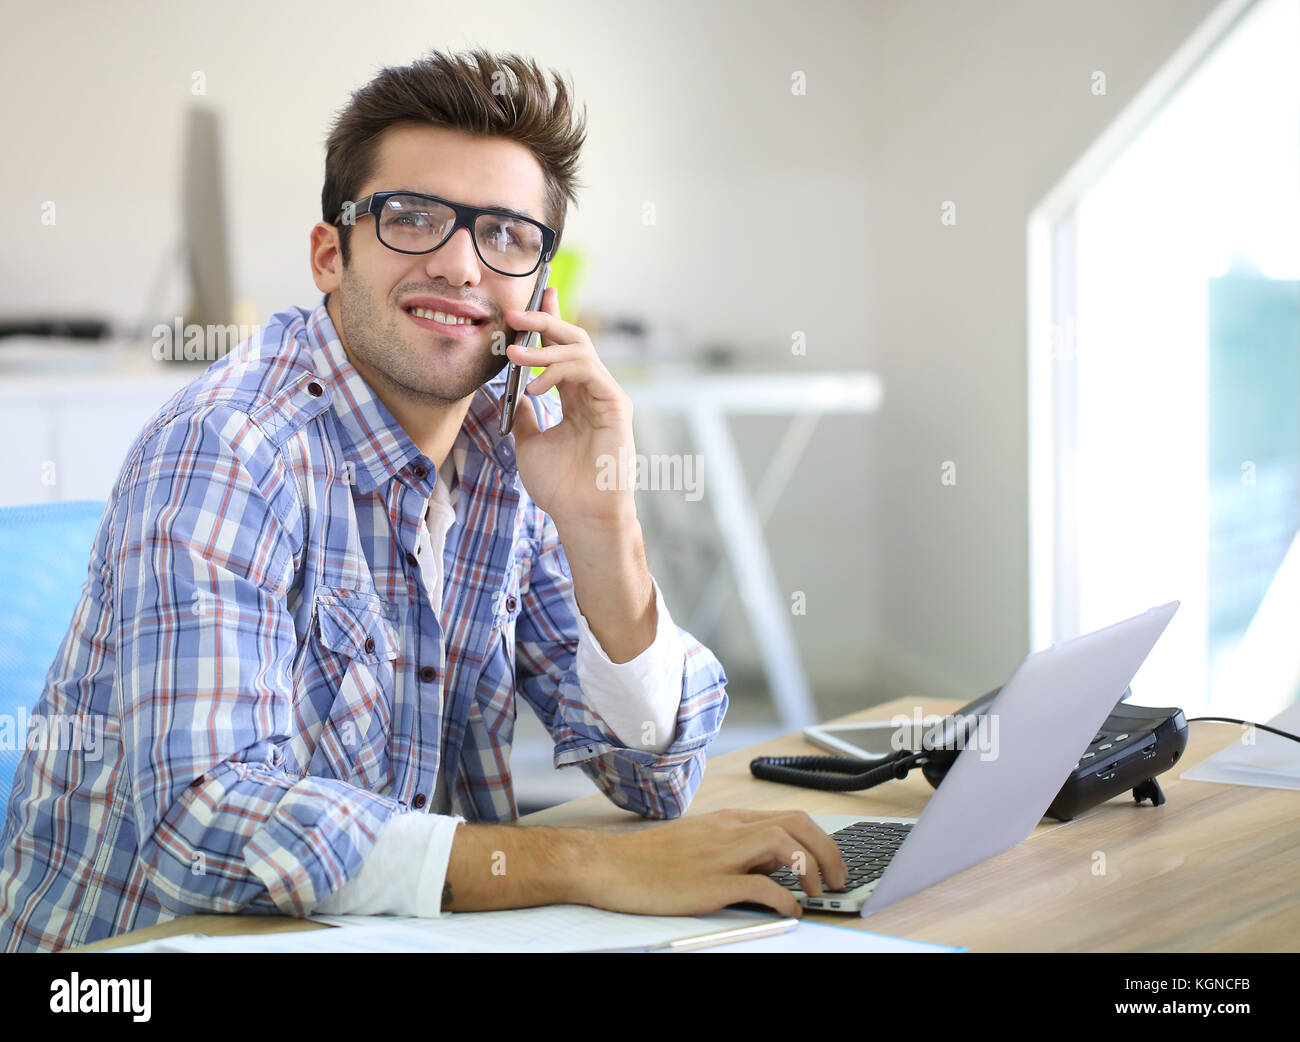 Trainee in office talking on the phone - Stock Image